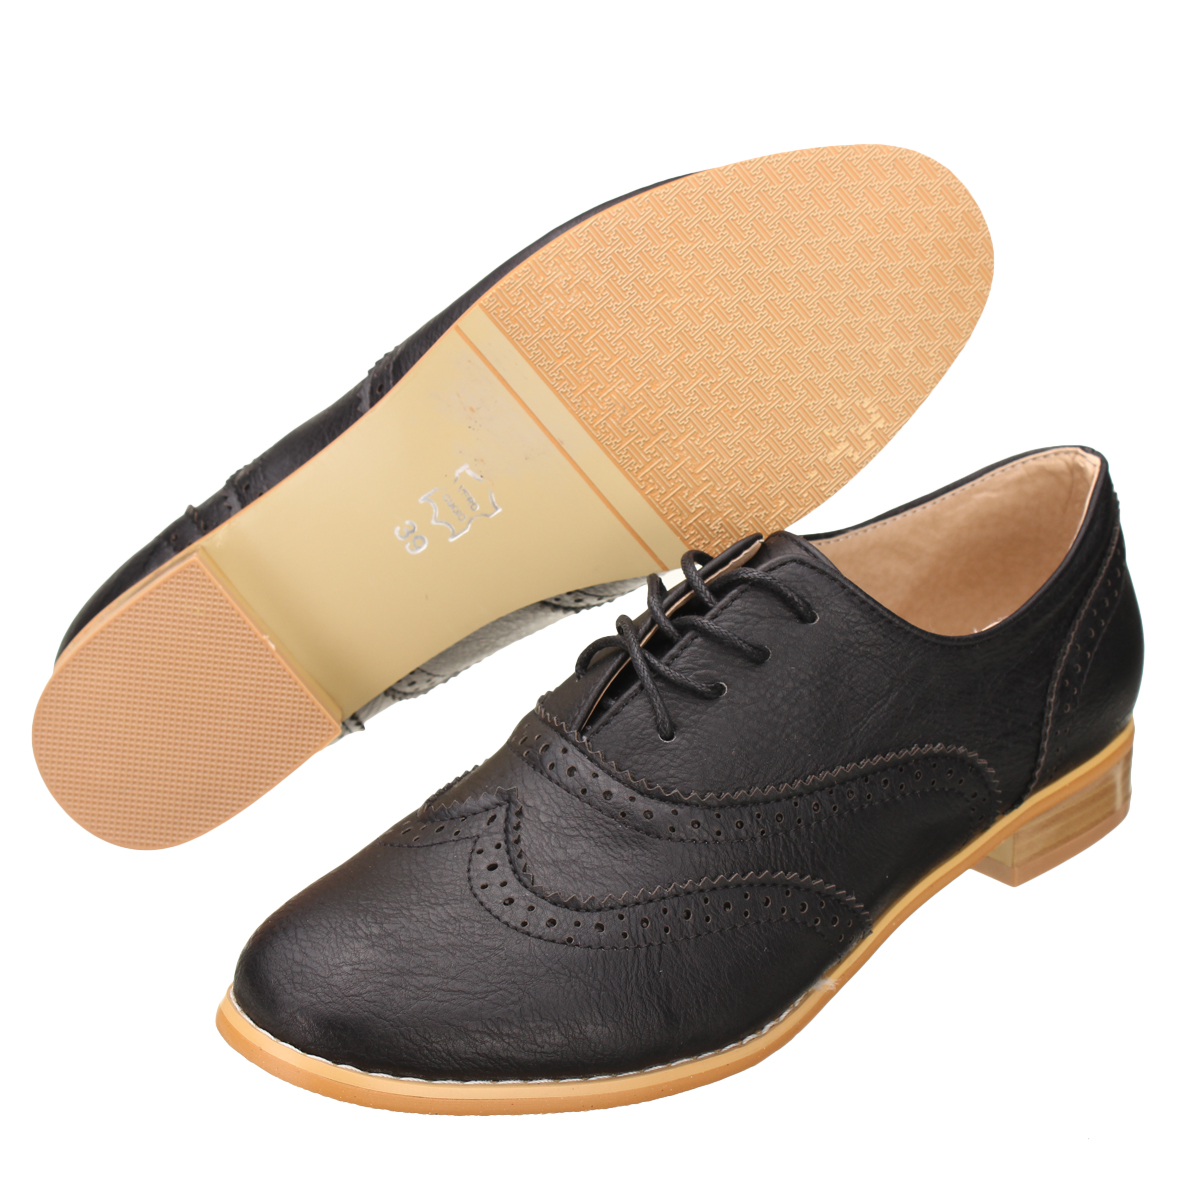 b5fd2009d6 Nis Women s Lace Up Wing Tip Oxfords College Style Student Flat Shoes Brogue  | 11street Malaysia - Ballerinas & Flats